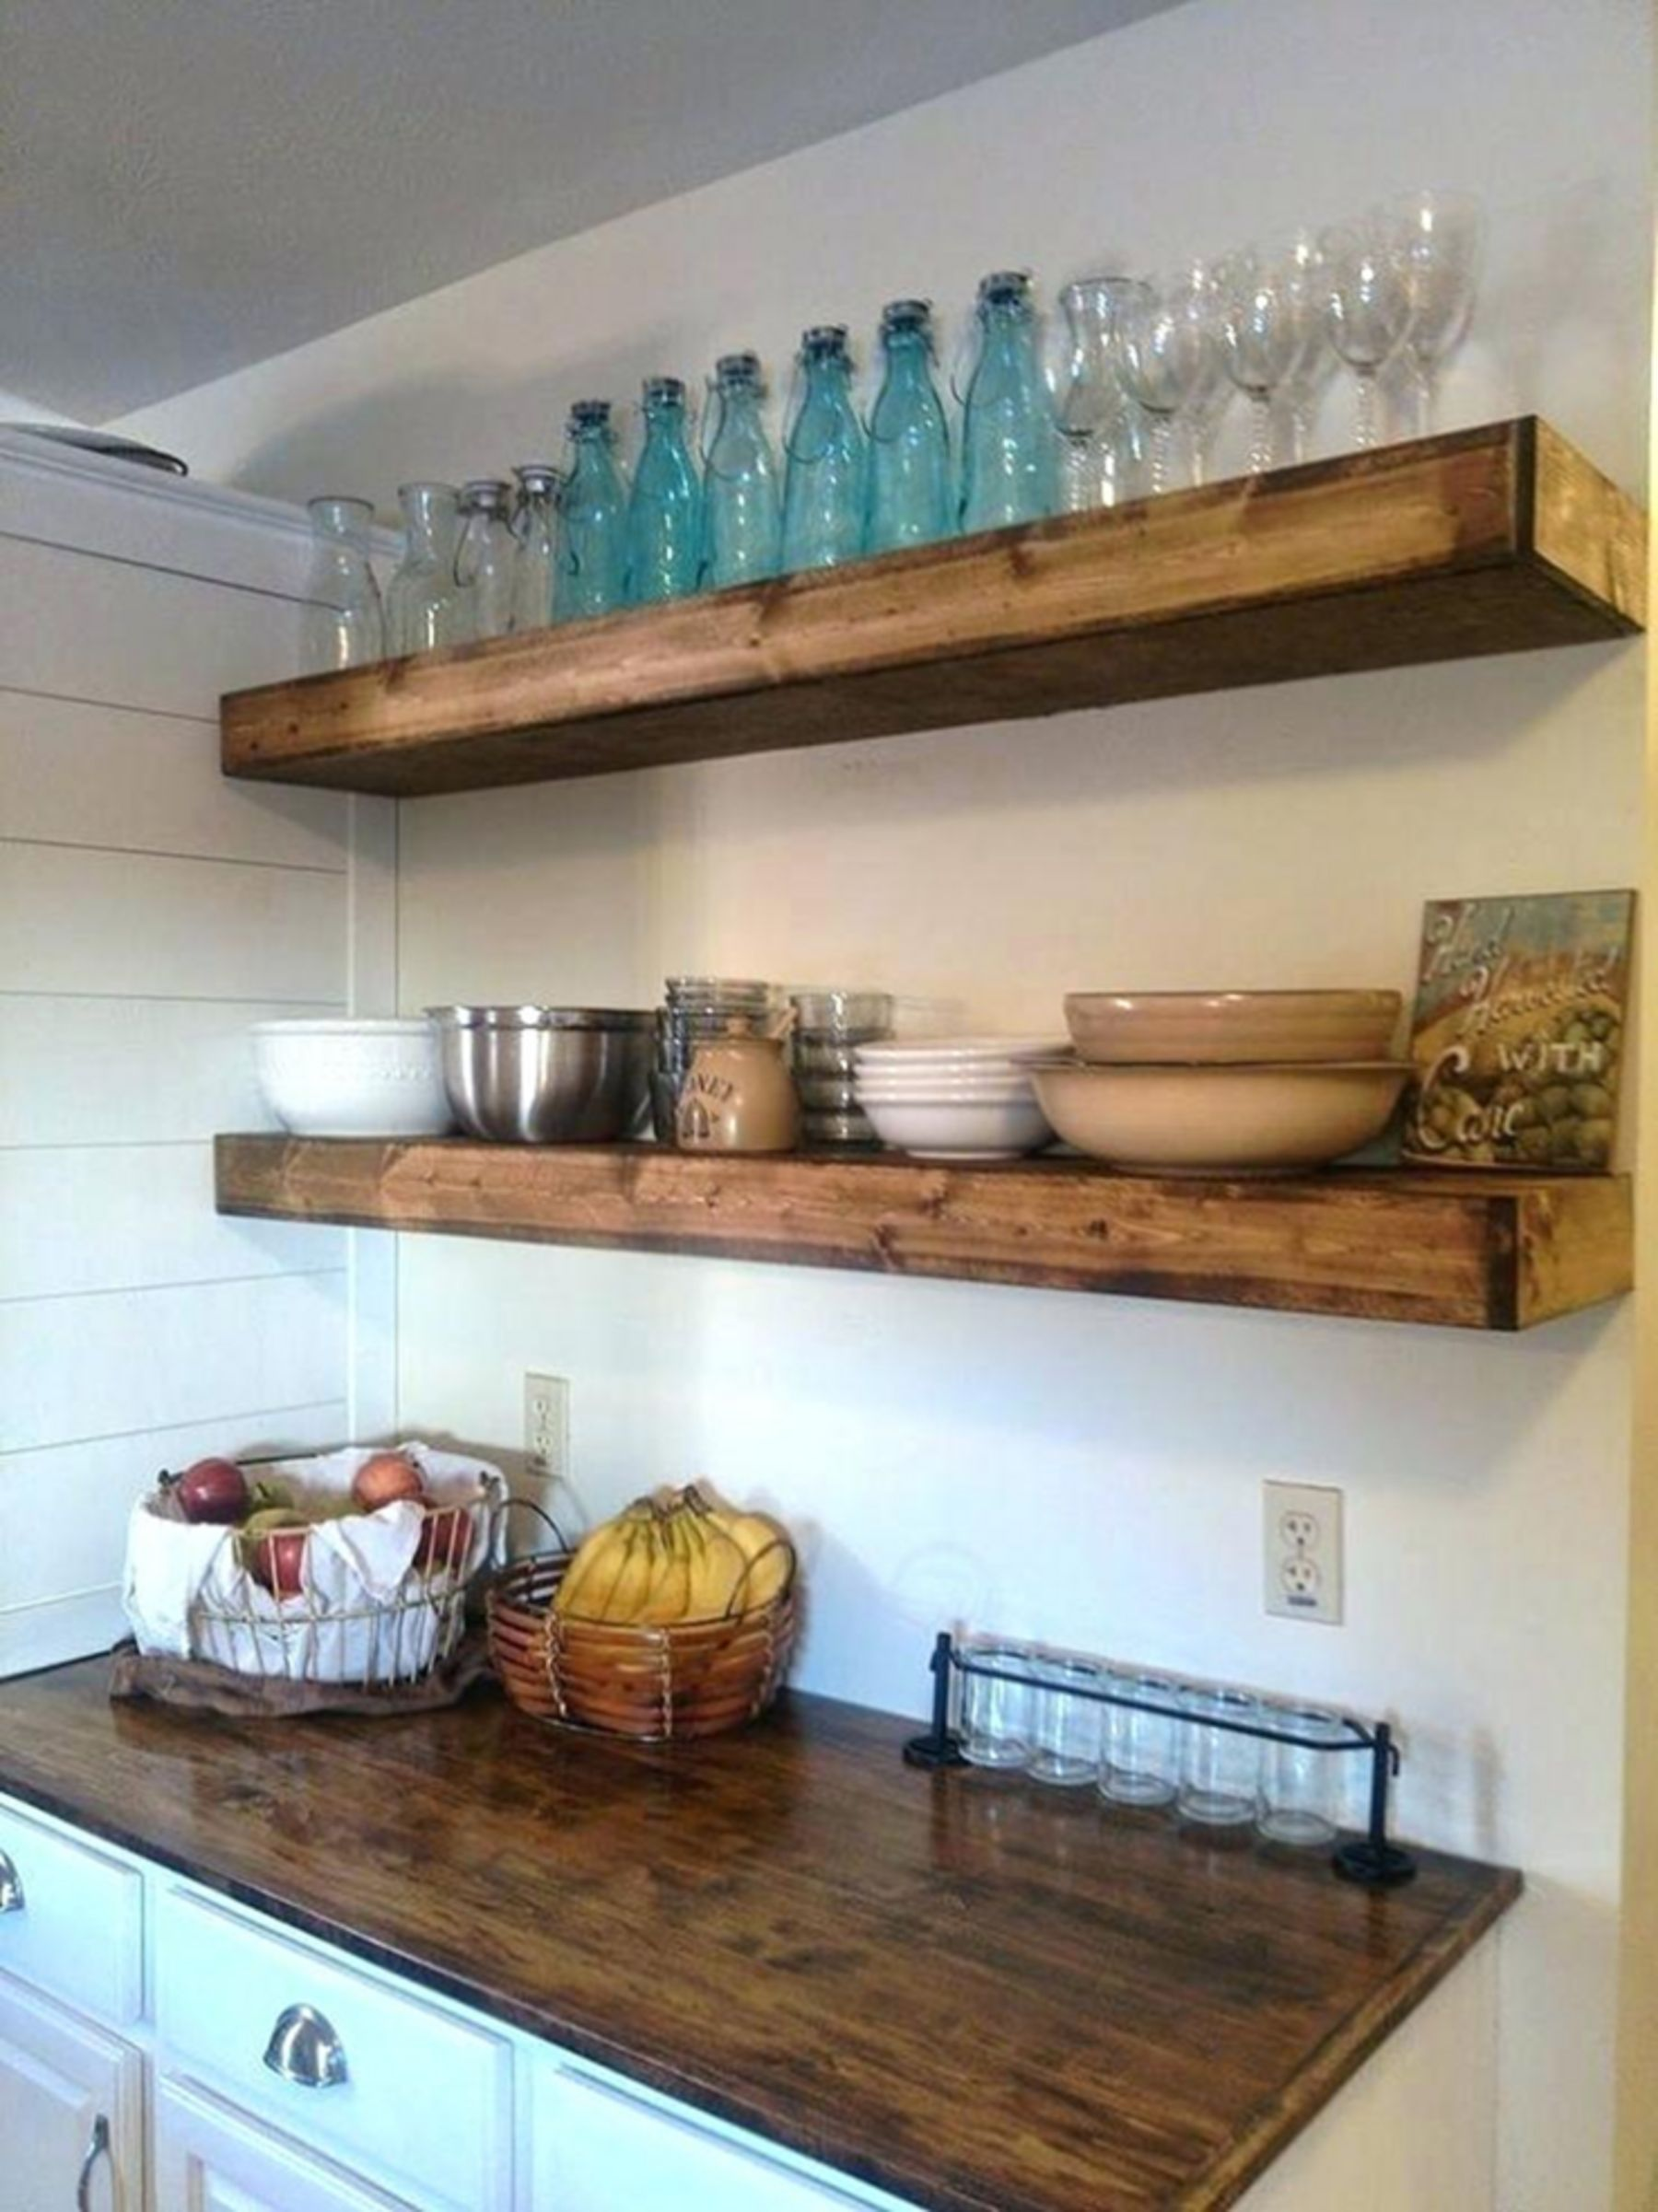 10 Popular Kitchen Wood Shelf Design Ideas To Make Your Cooking